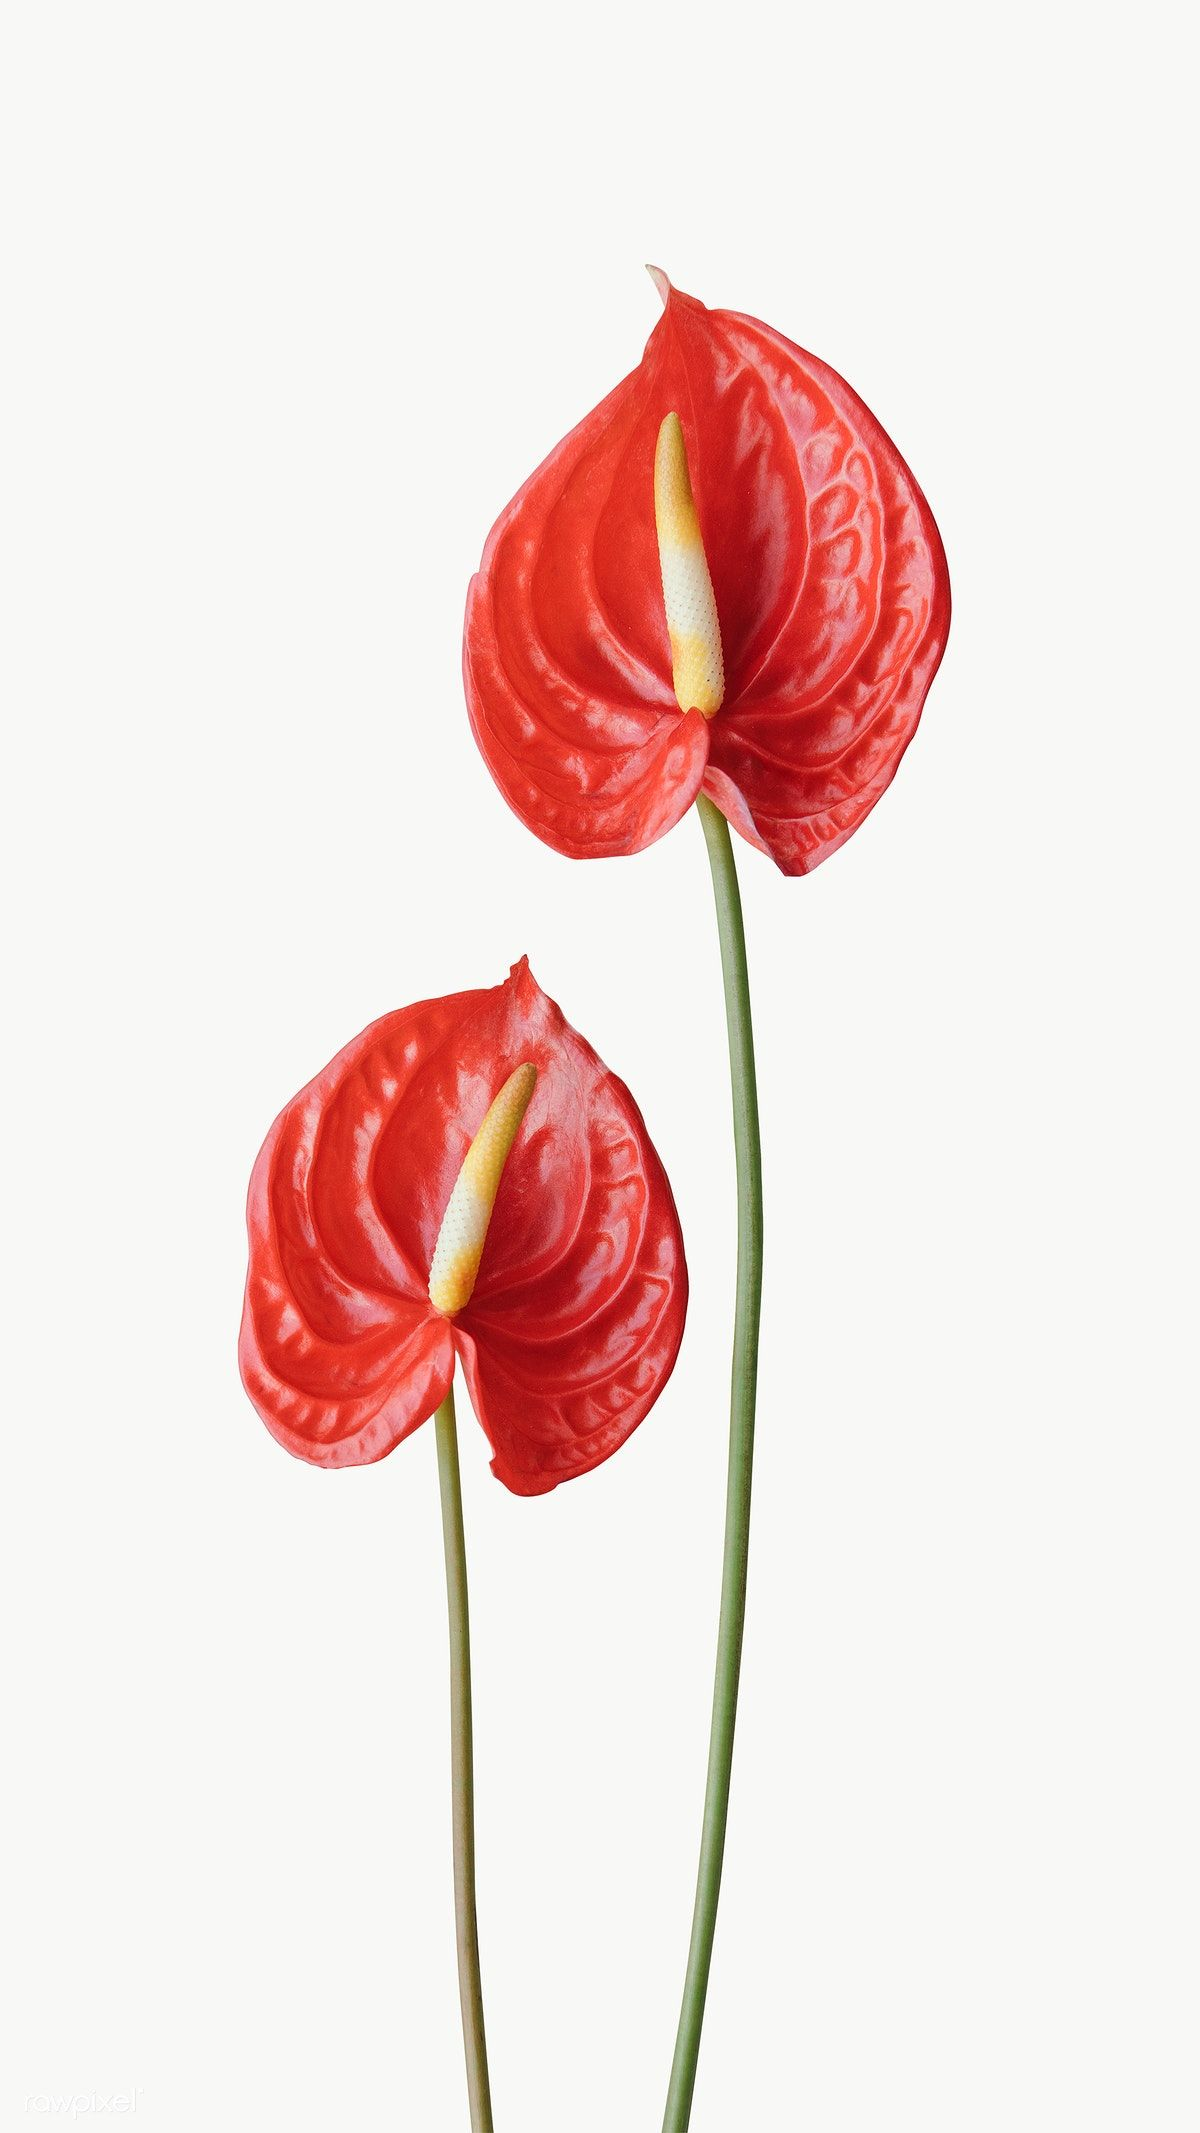 Pin By Rawpixel On Artattoos In 2020 Anthurium Flower Flowers Photography Anthurium